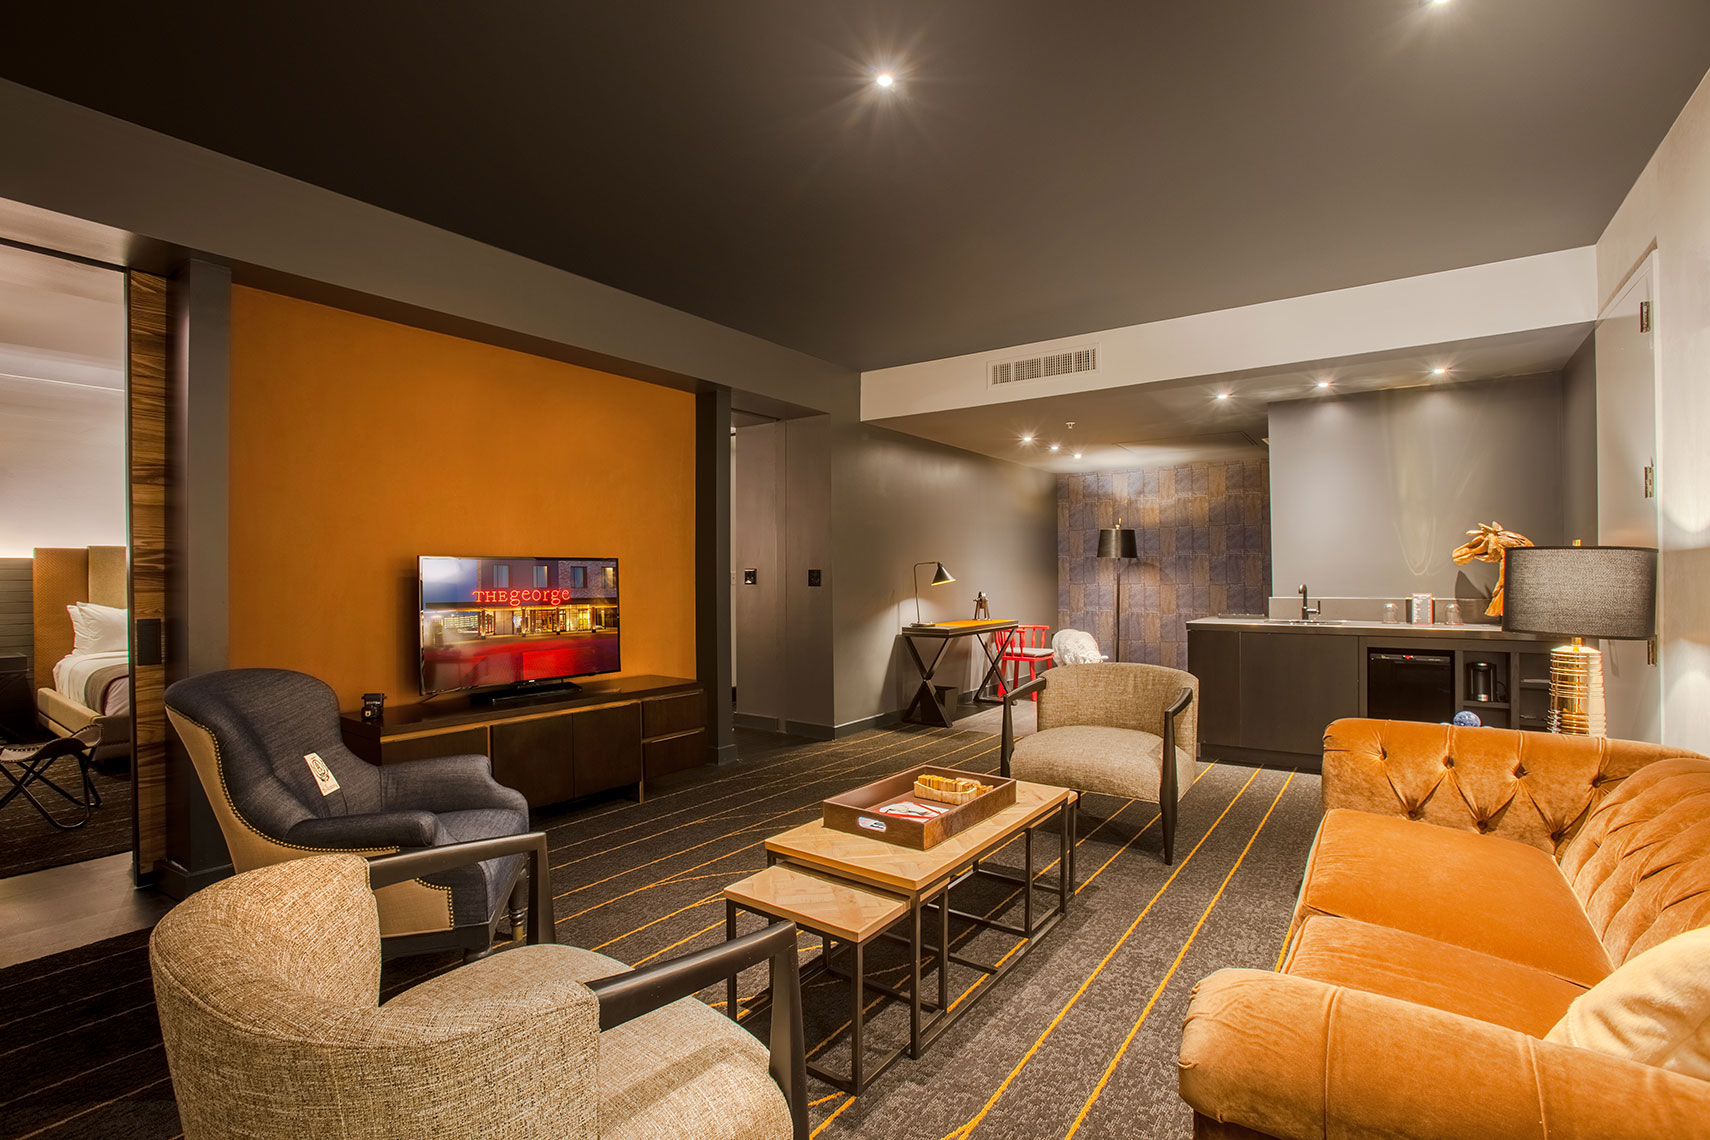 Hotel Room photography by Houston Architectural Photographer Shannon O